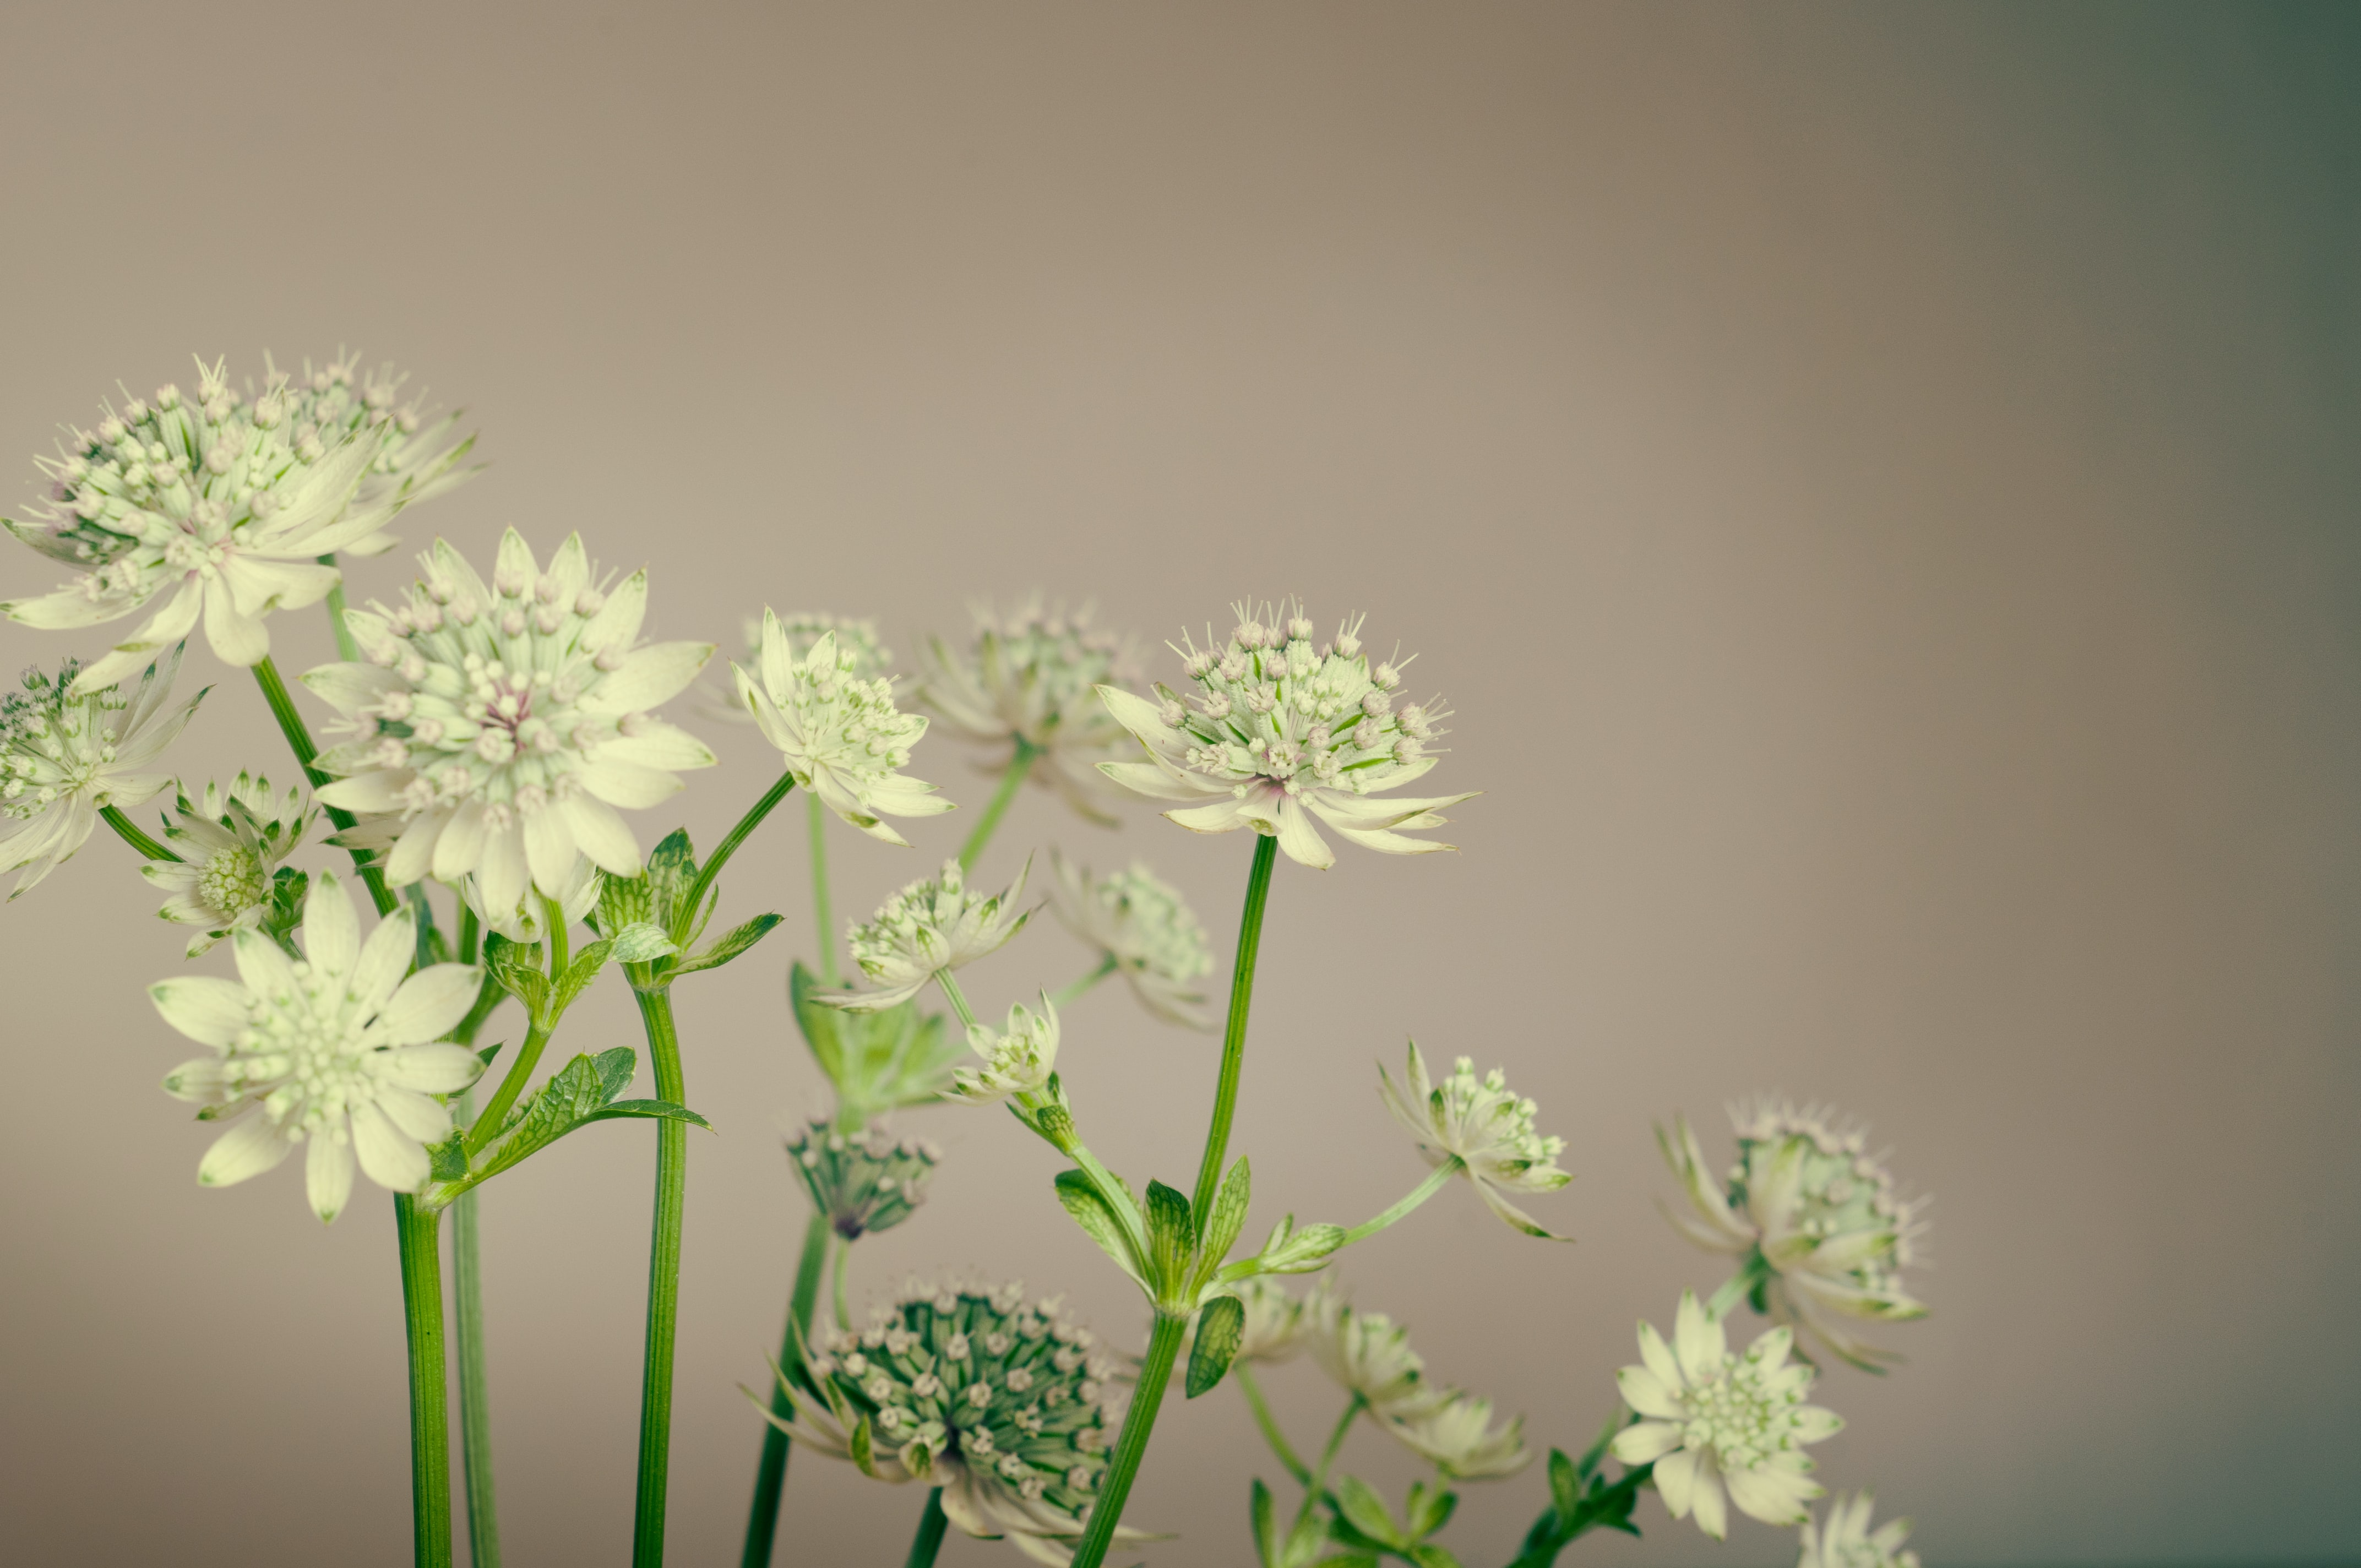 Close-up of white wild flowers against a white wall